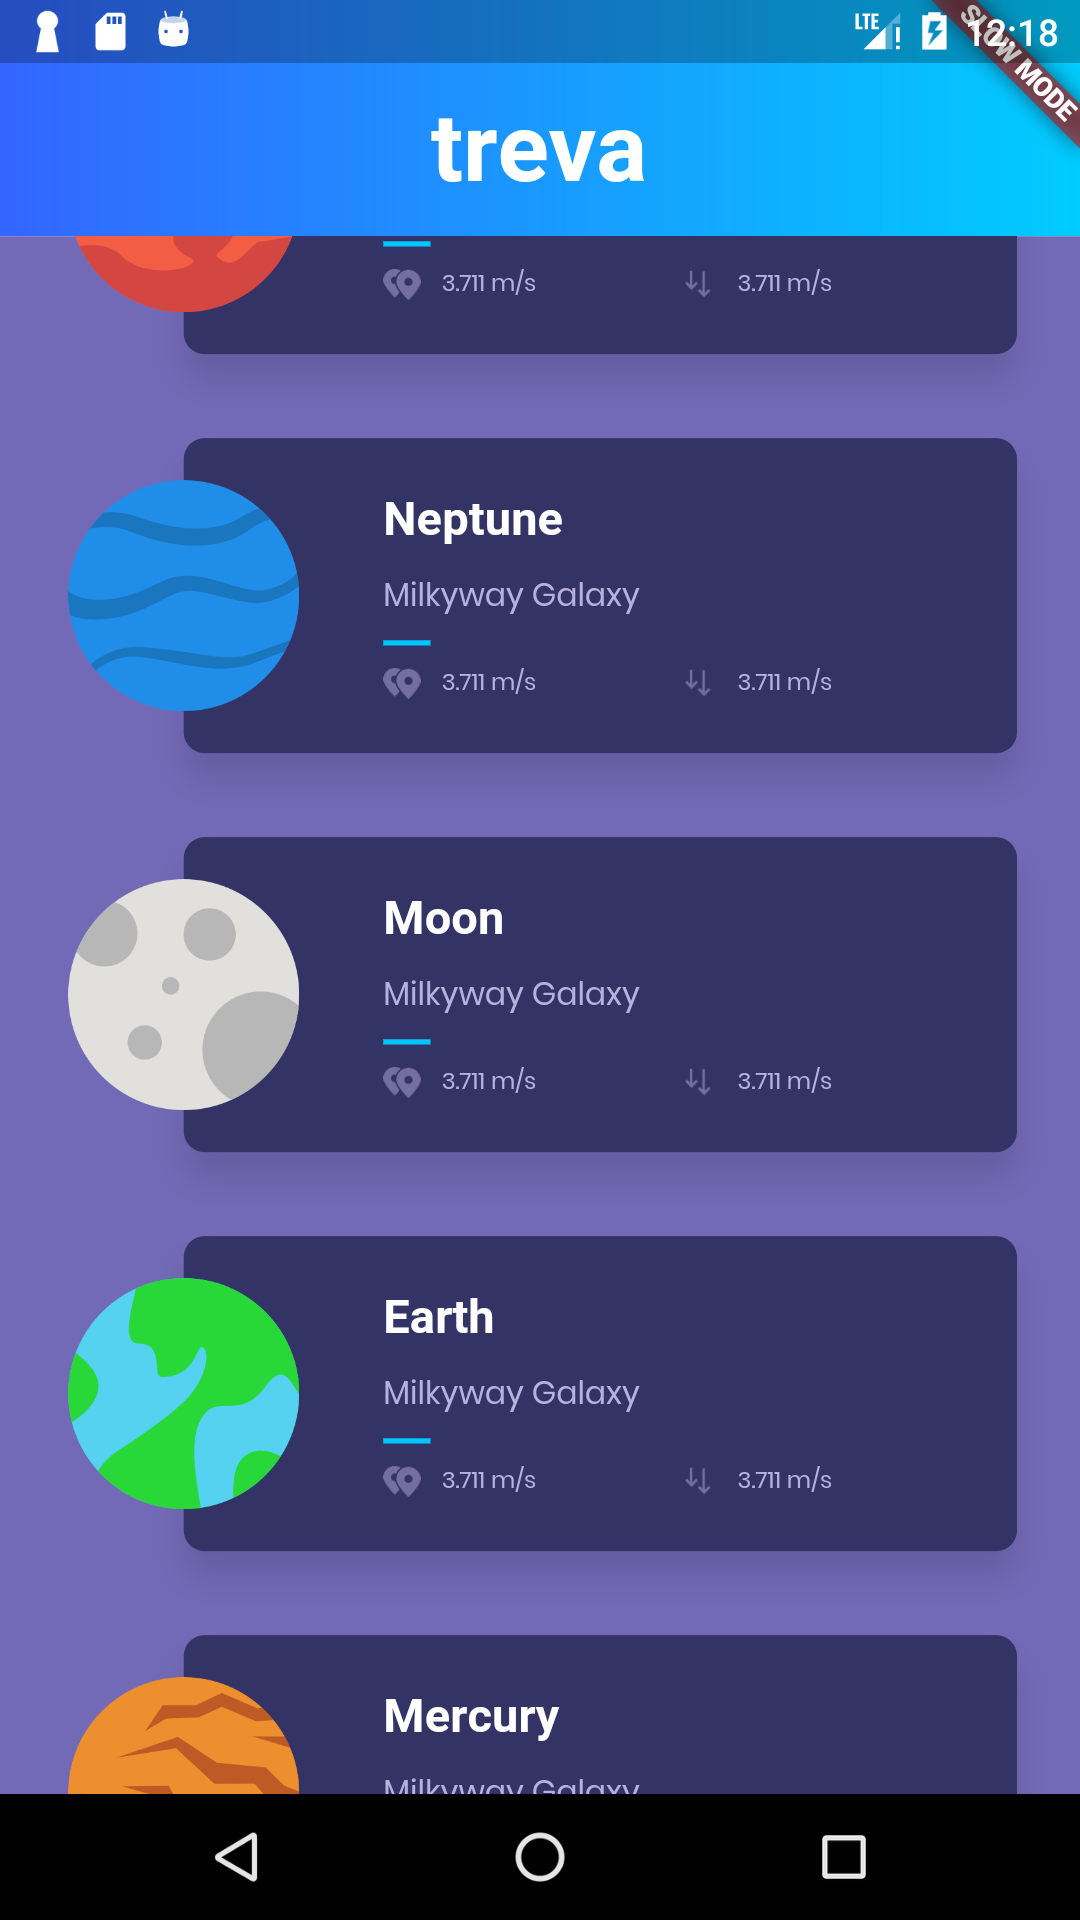 Planets-Flutter: routing and navigation